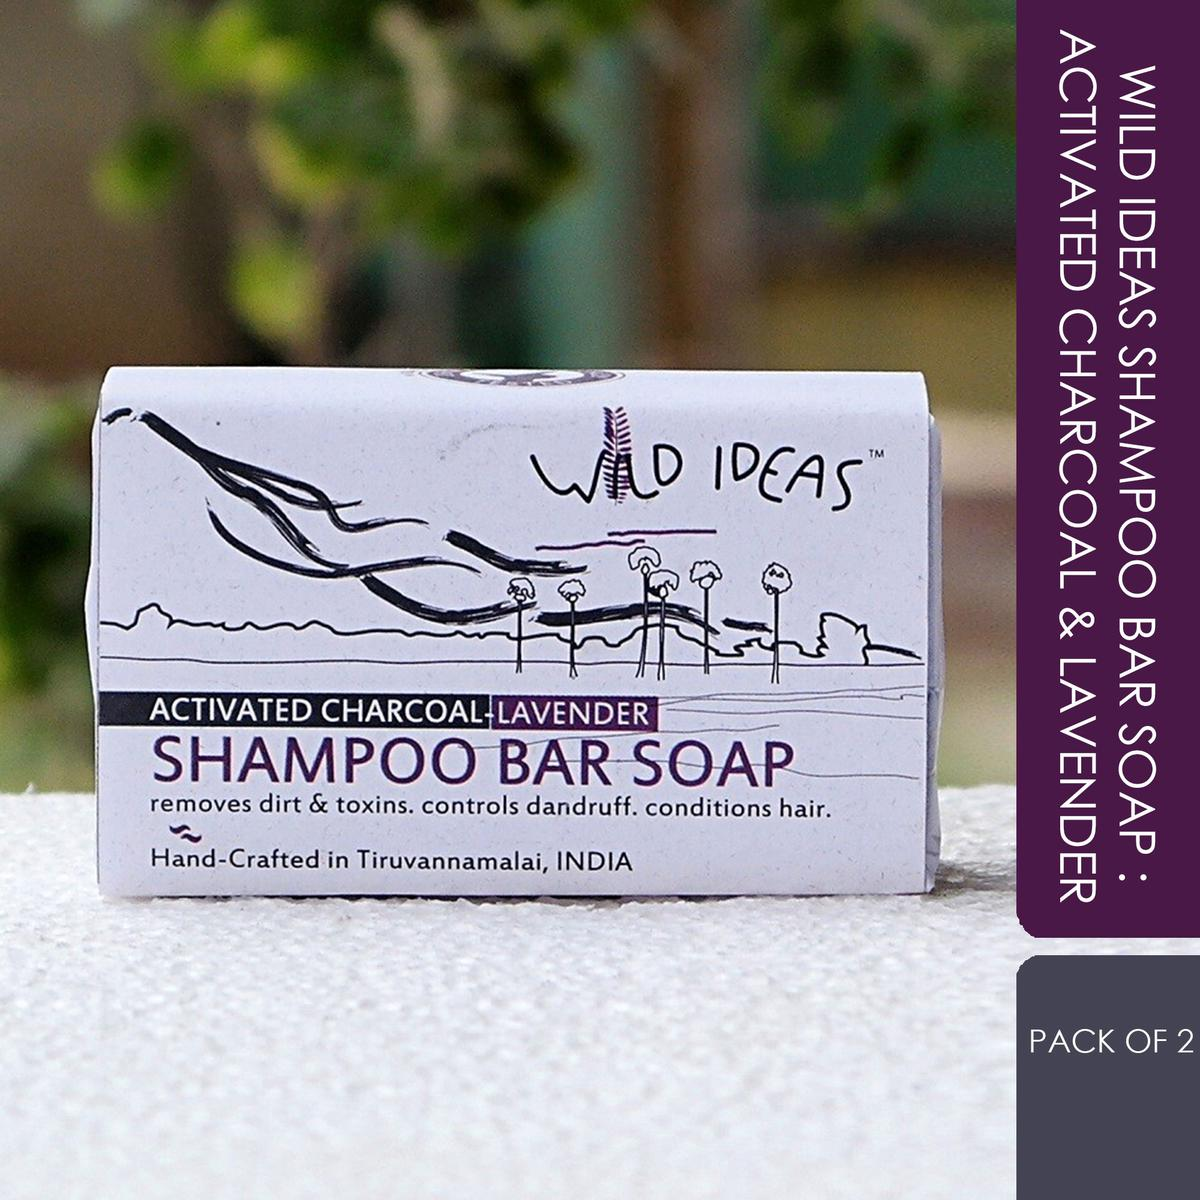 Wild Ideas Shampoo Bar Soap: Activated Charcoal & Lavender (Pack of 2)